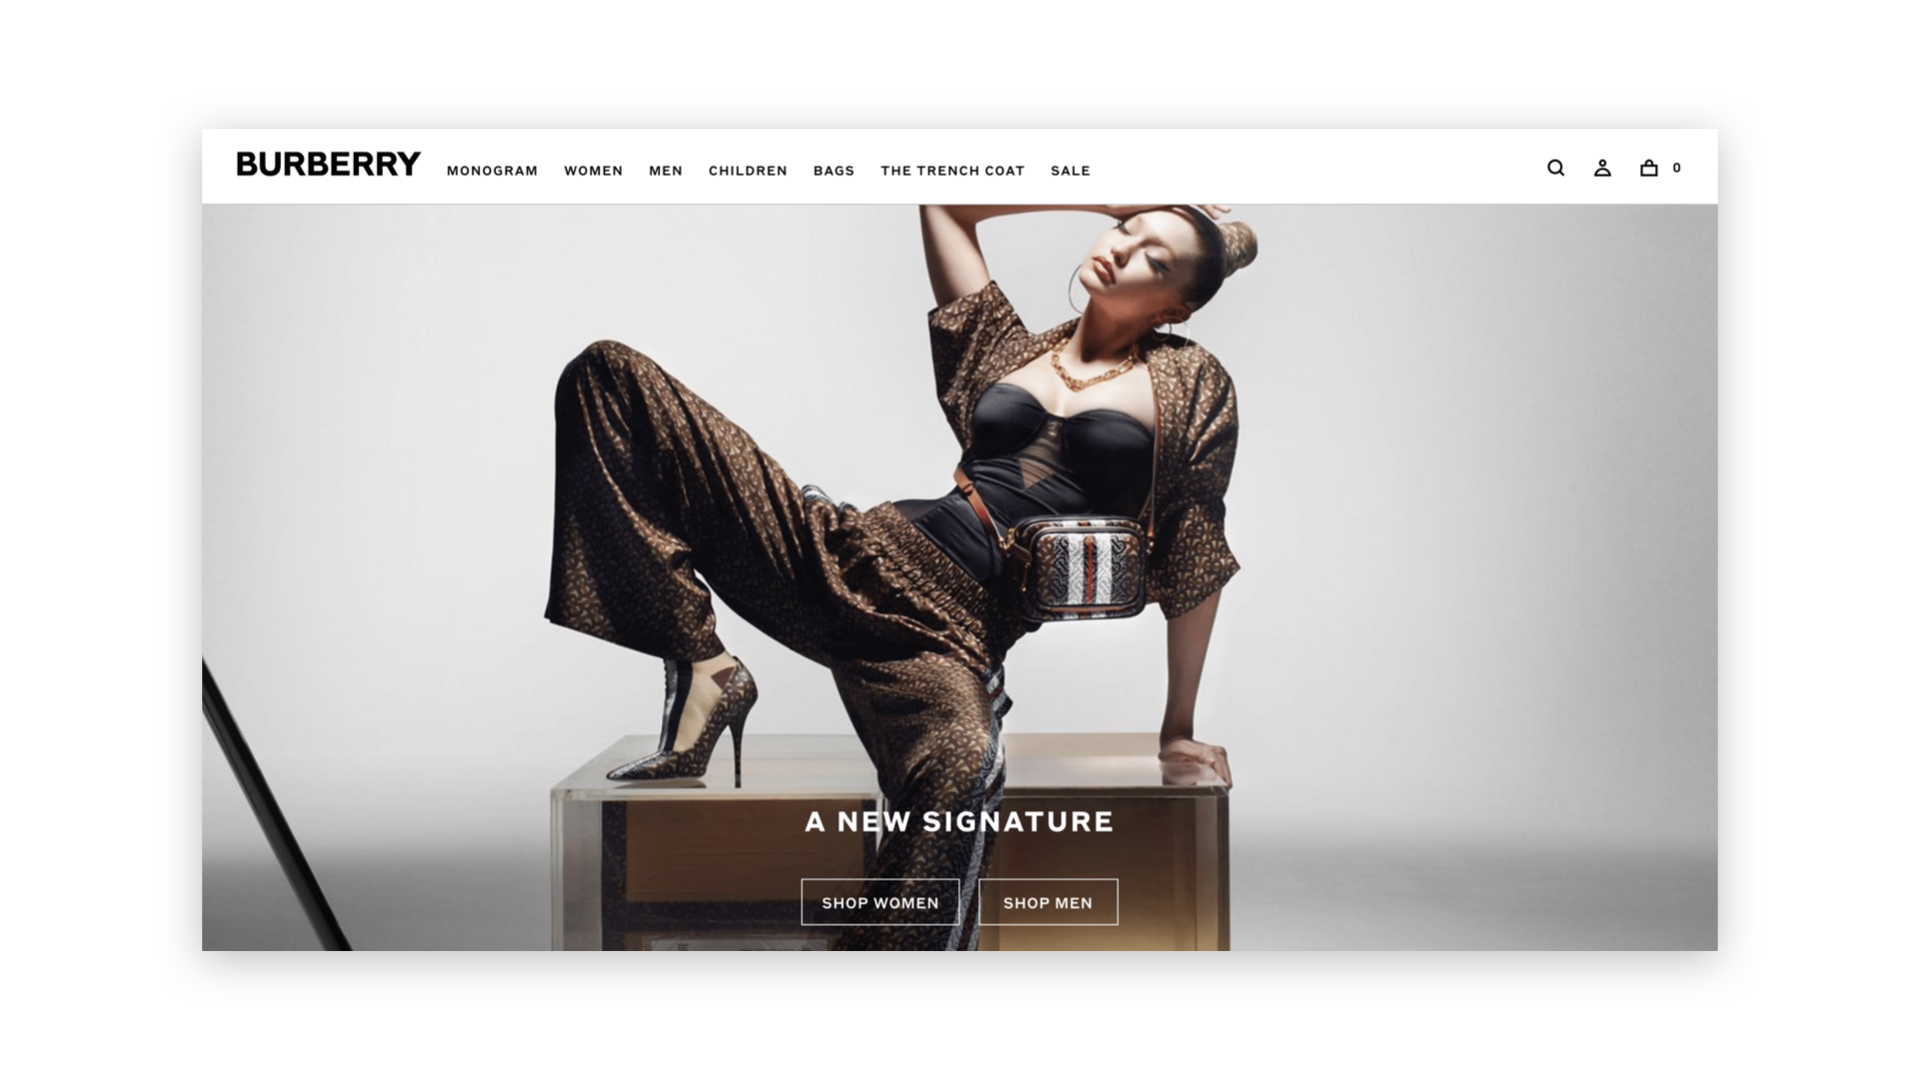 G & Co. is a DTC marketing agency: G & Co. is a luxury and DTC digital agency who has worked with Burberry and Outdoor Voices